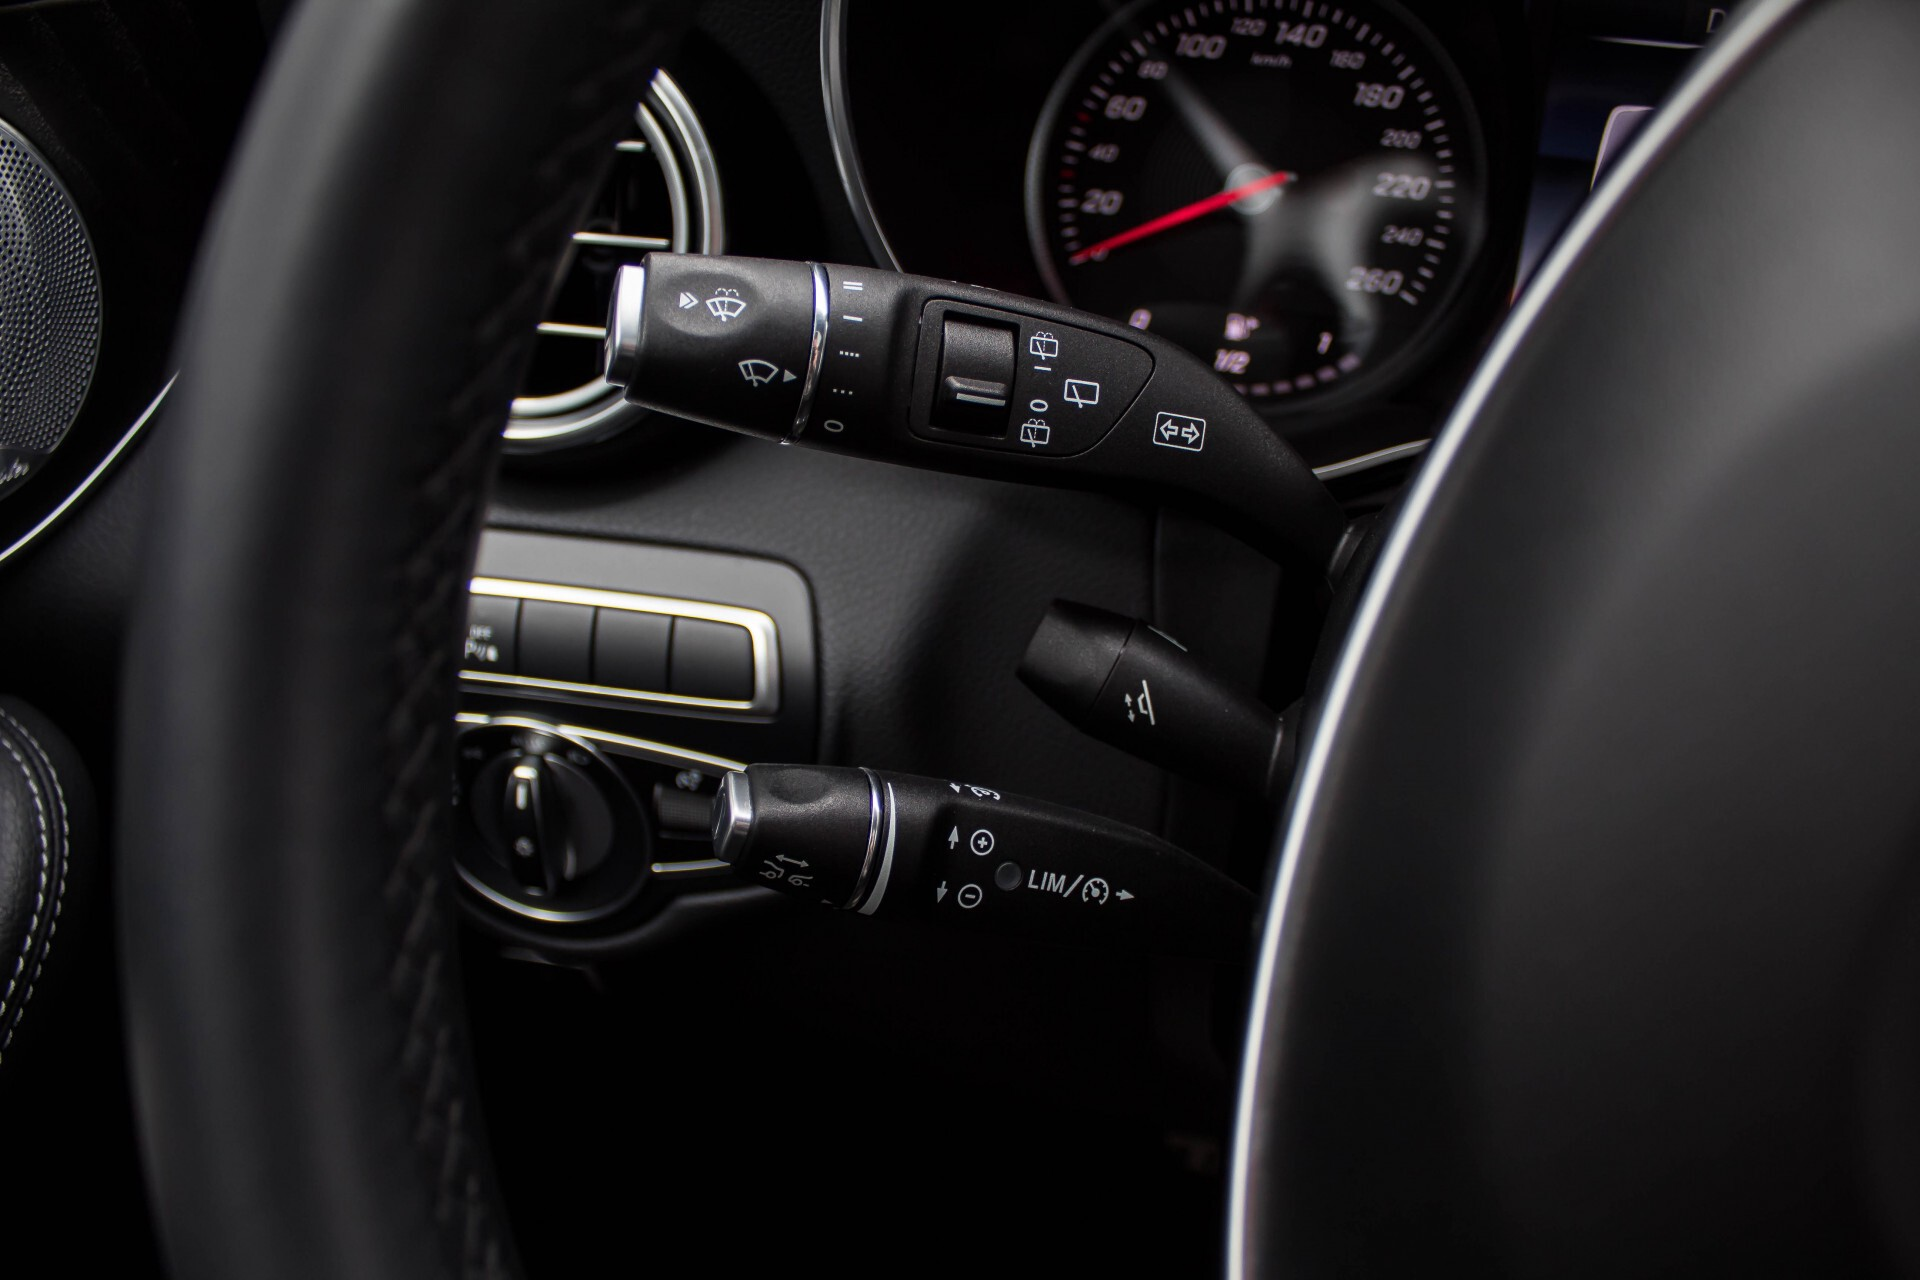 Mercedes-Benz GLC-Klasse 300 4-M AMG Panorama Distronic/Keyless/Burmester/Memory/Night Aut9 Foto 10